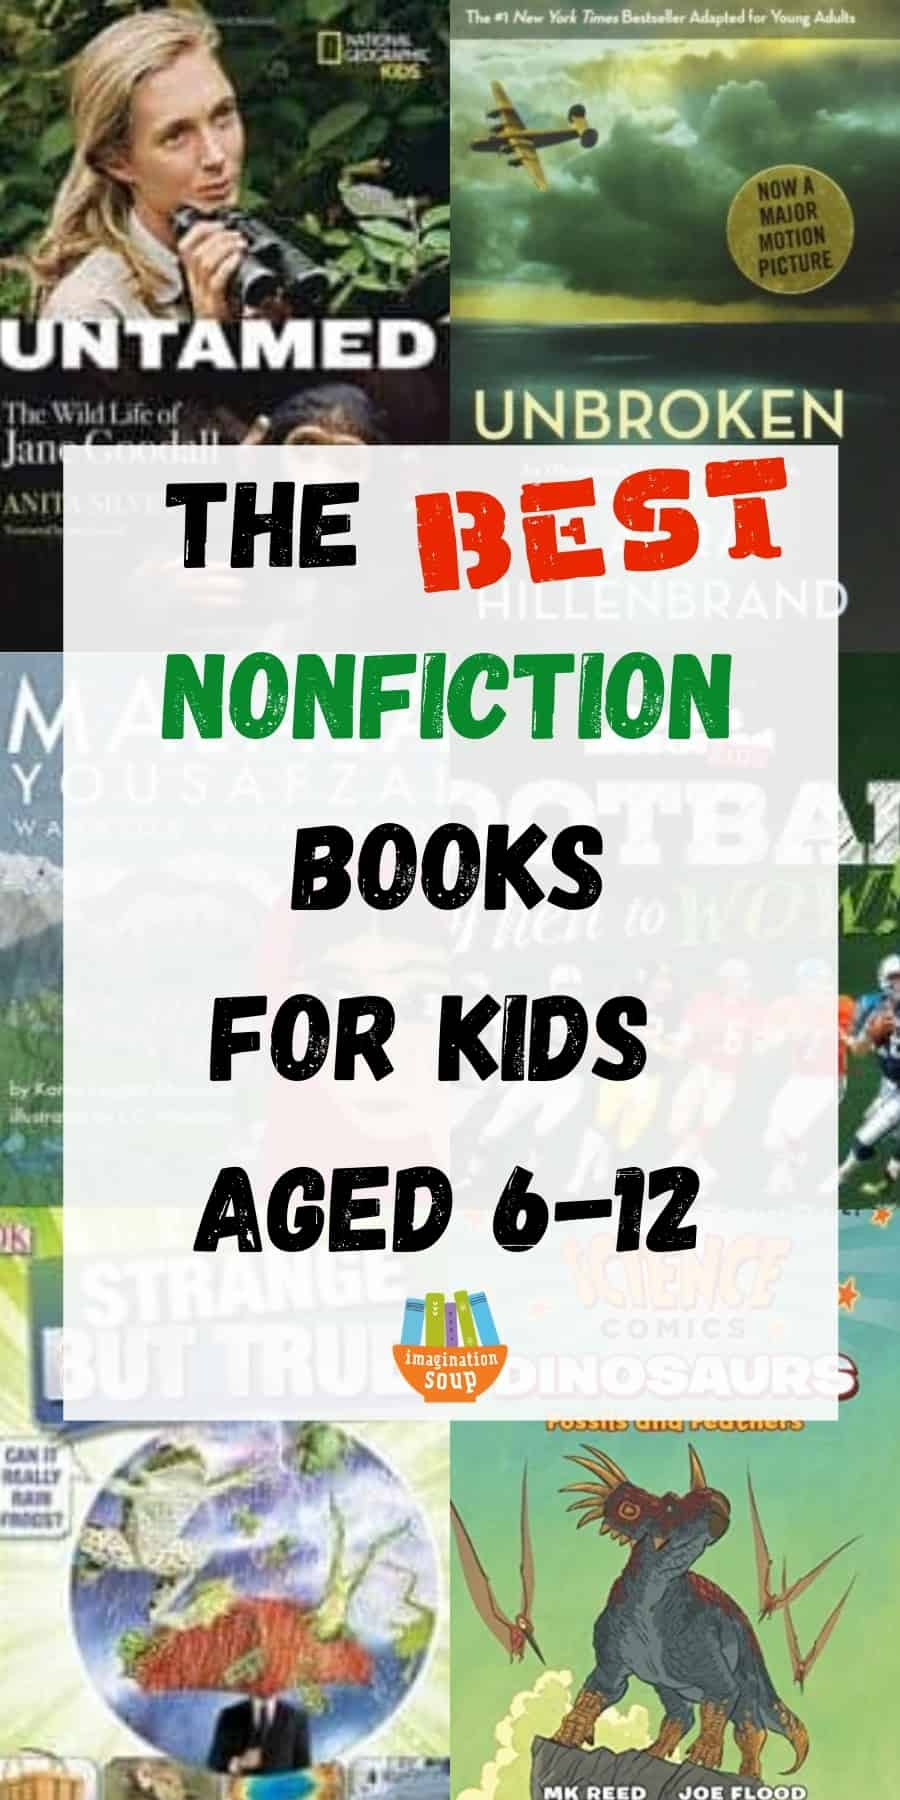 the best nonfiction books for kids aged 6-12